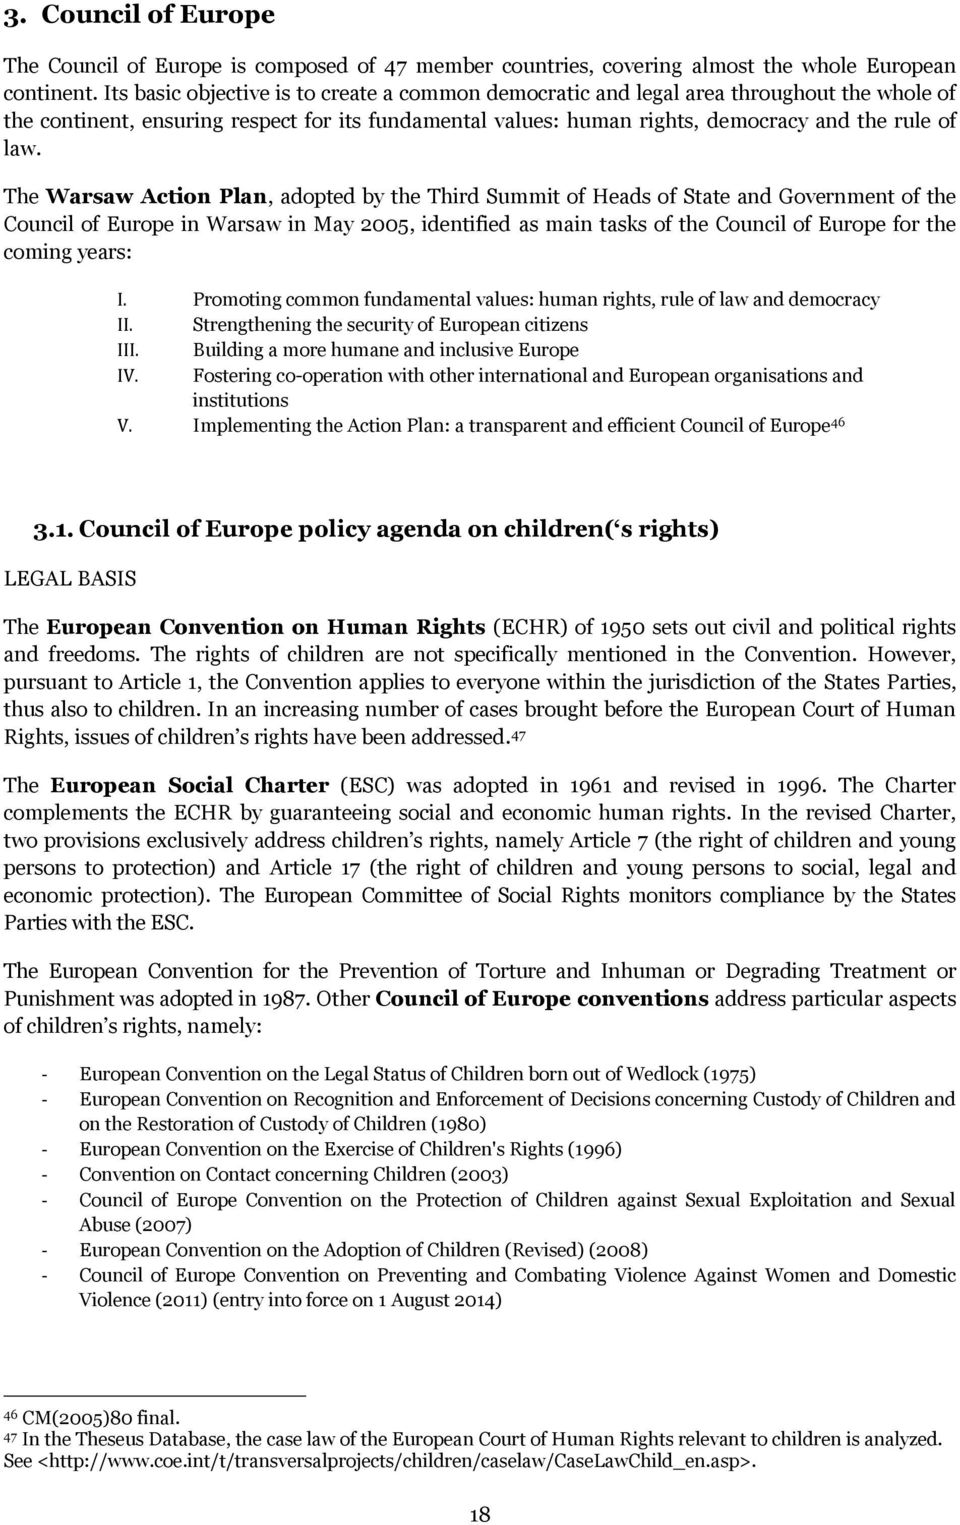 The Warsaw Action Plan, adopted by the Third Summit of Heads of State and Government of the Council of Europe in Warsaw in May 2005, identified as main tasks of the Council of Europe for the coming